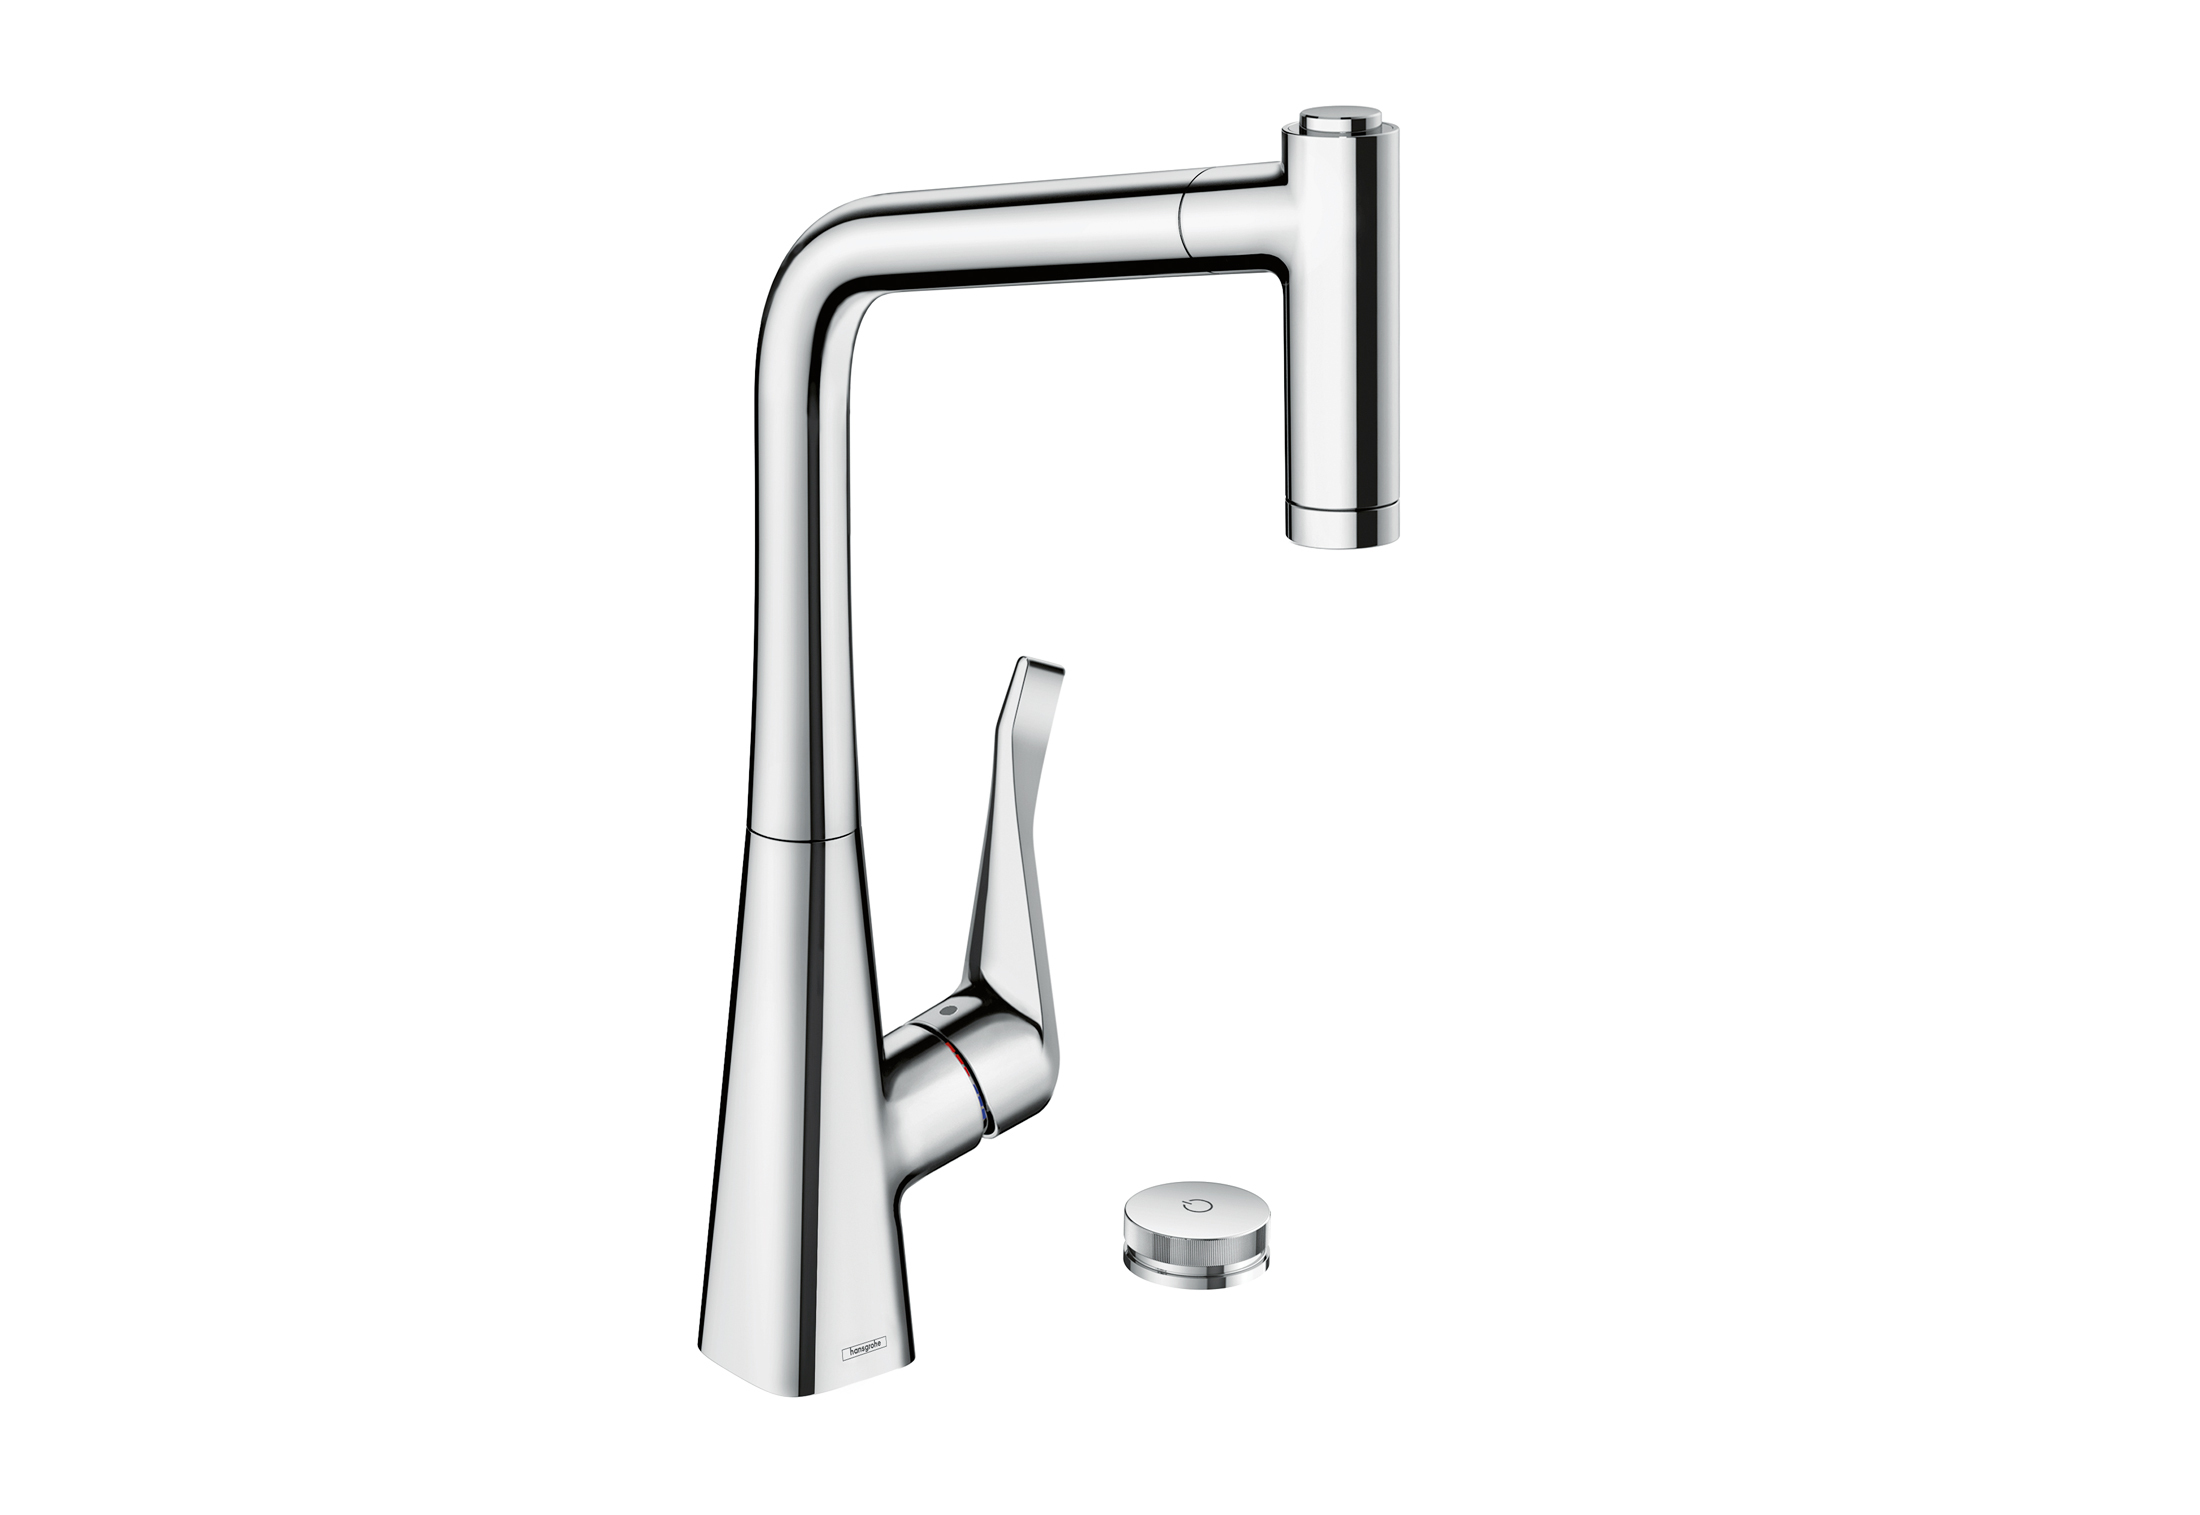 metris select single lever kitchen mixer with pull out spout by hansgrohe stylepark. Black Bedroom Furniture Sets. Home Design Ideas